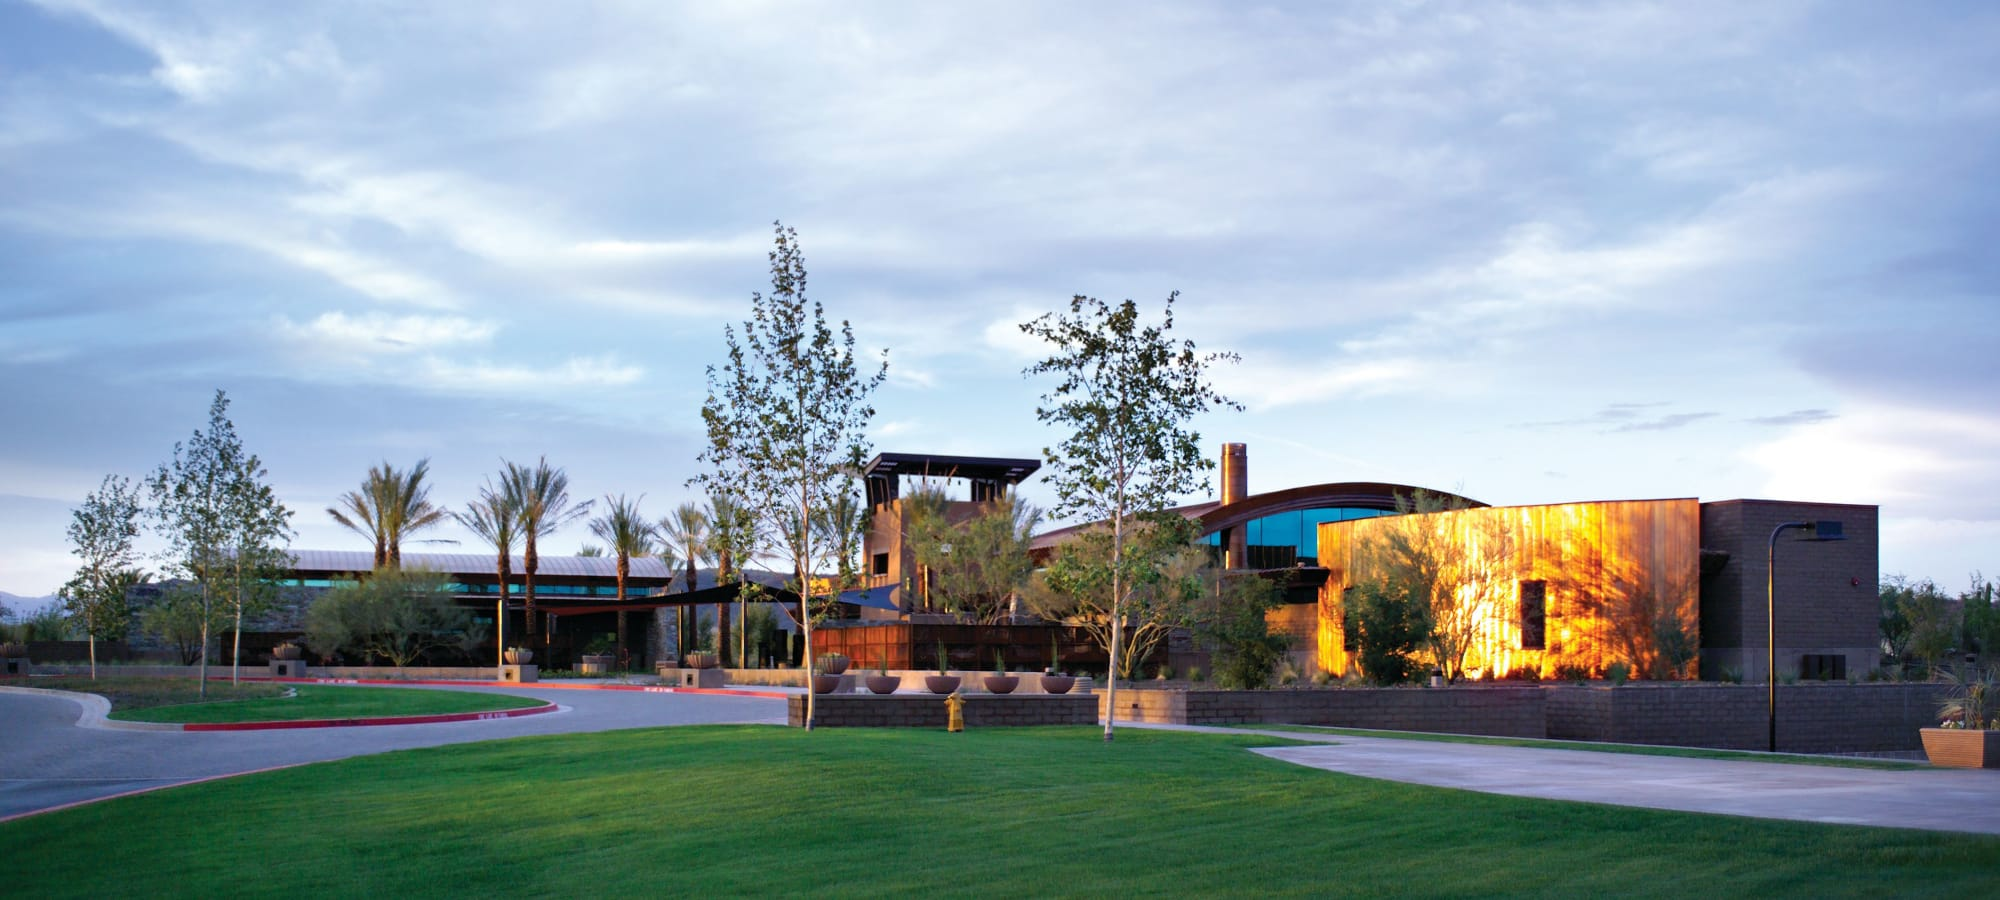 Resident community center at Vistancia in Peoria, Arizona